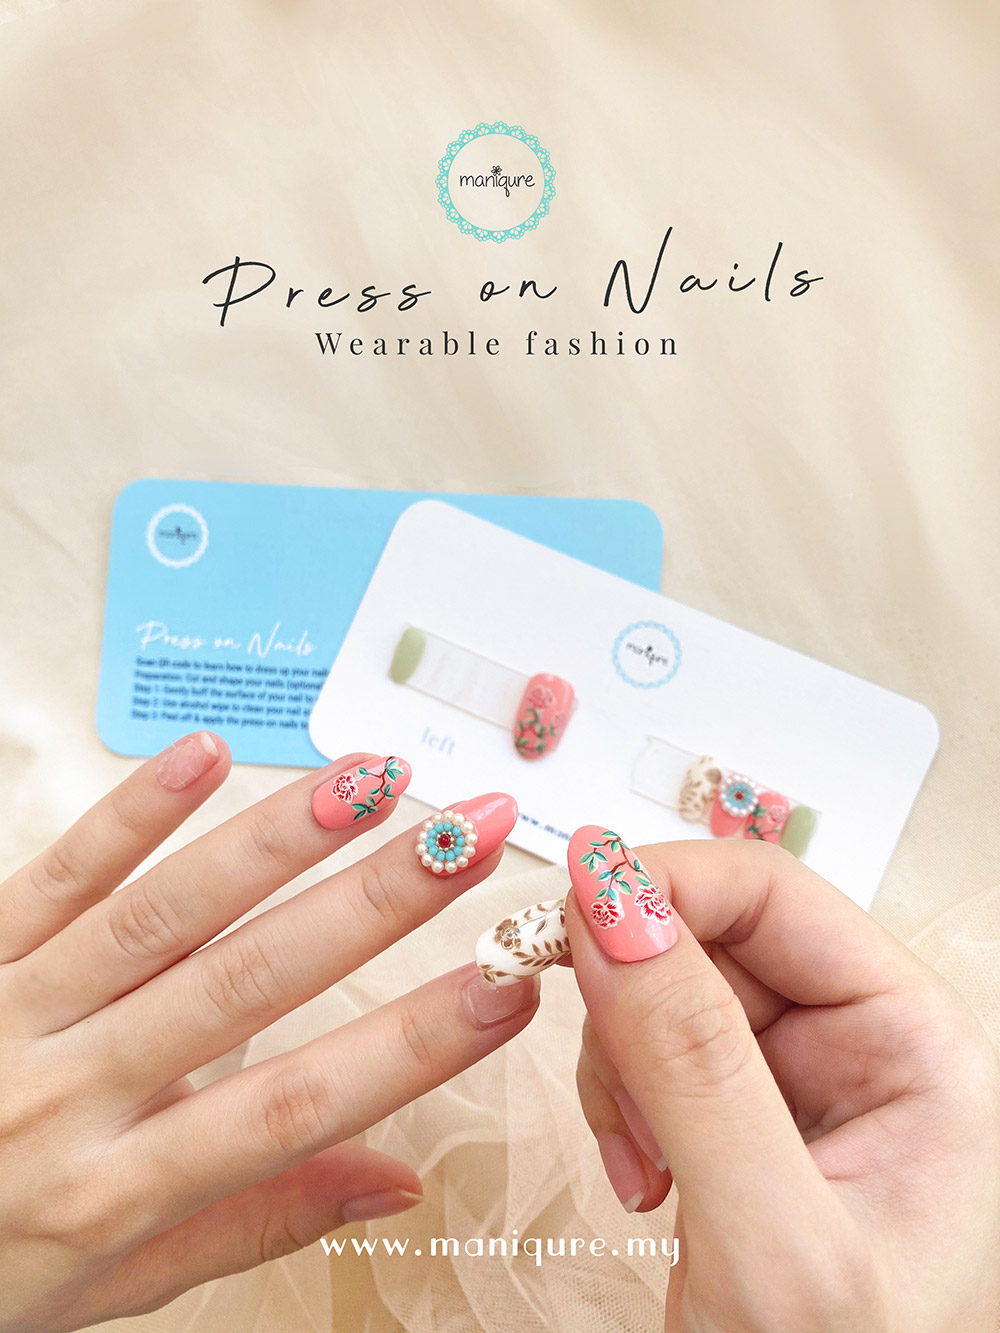 Press-on Nails Malaysia - Fake Nails Artificial Manicure